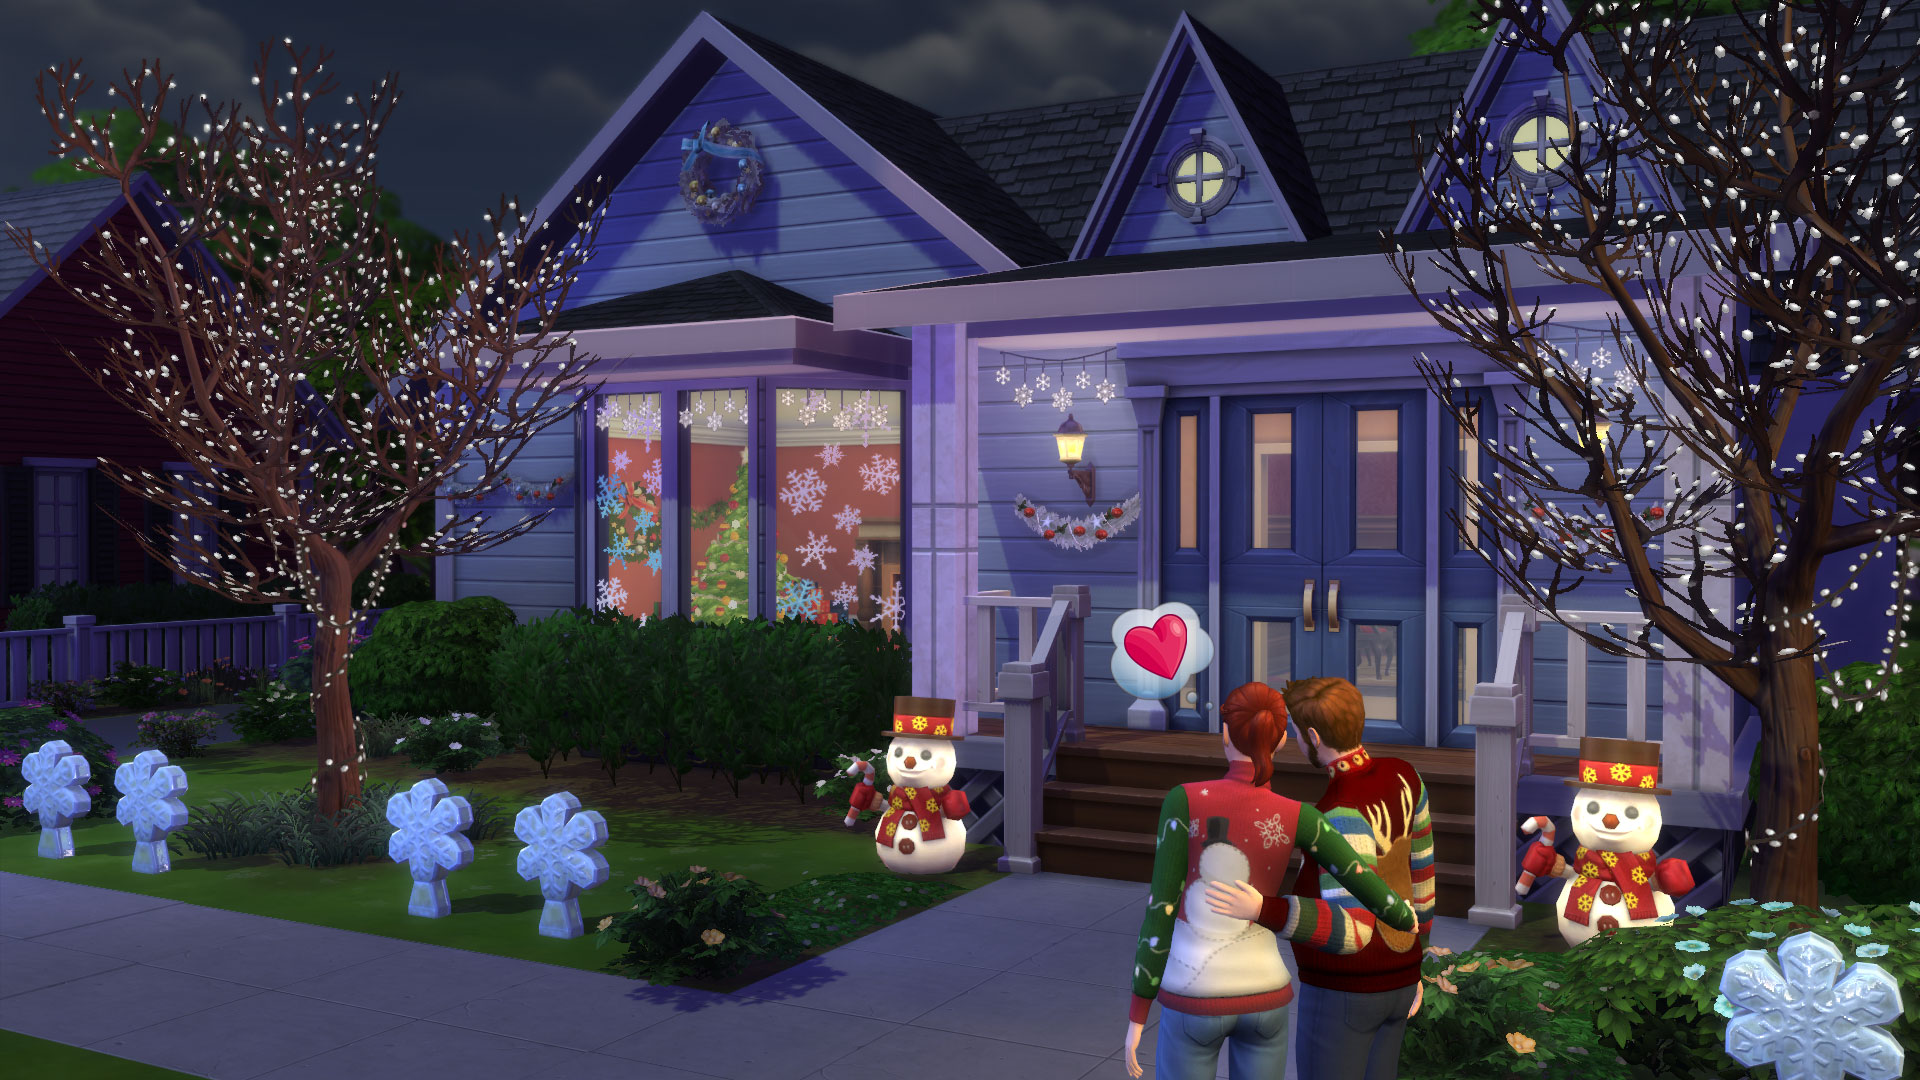 TS4_638_HOLIDAY_PACK_01_001a.jpg